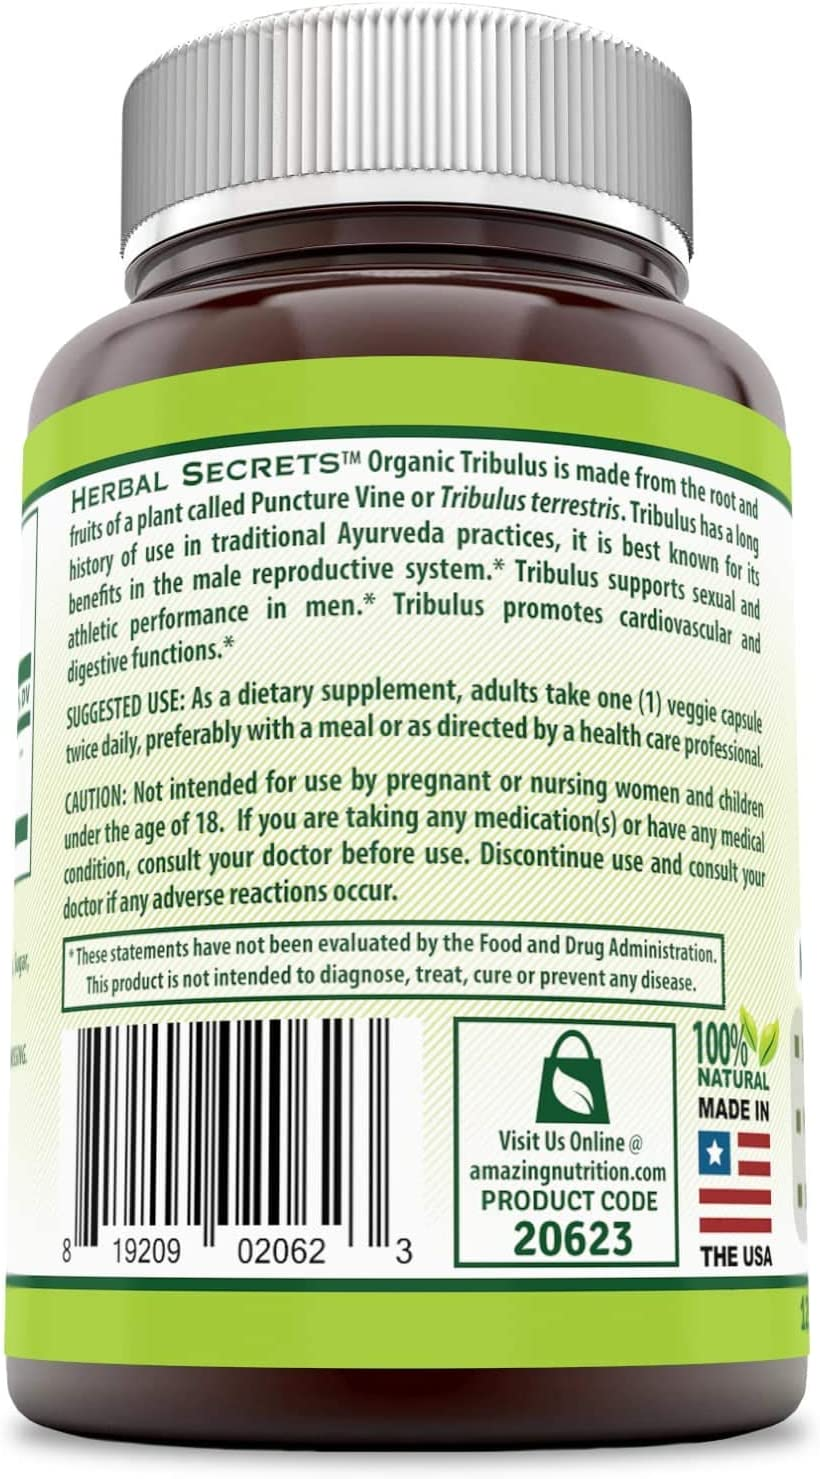 Herbal Secrets Tribulus 630 Mg 120 Veggie Capsules (Non-GMO) - Made with Organic Tribulus- Promotes Men's Reproductive Health, Supports Lean Muscle Mass & Strength Gain, Supports Overall Health*: Health & Personal Care